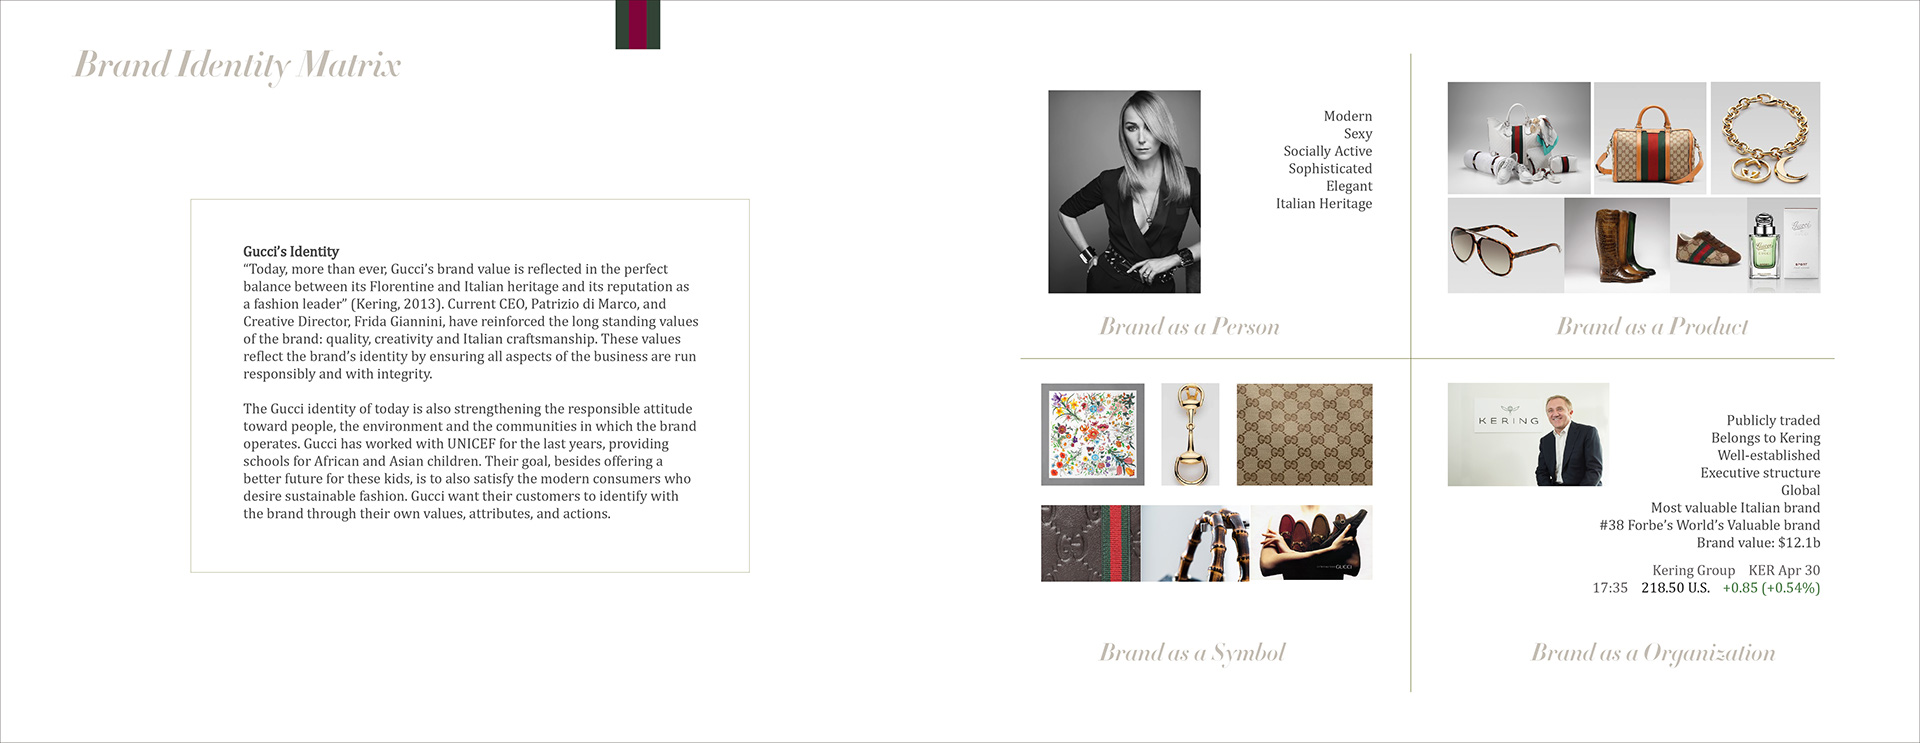 gucci executive summary Elevated and empowered executive team with upgraded design and balance sheet and cash flow summary well as new store concept rollout and visual presentation.